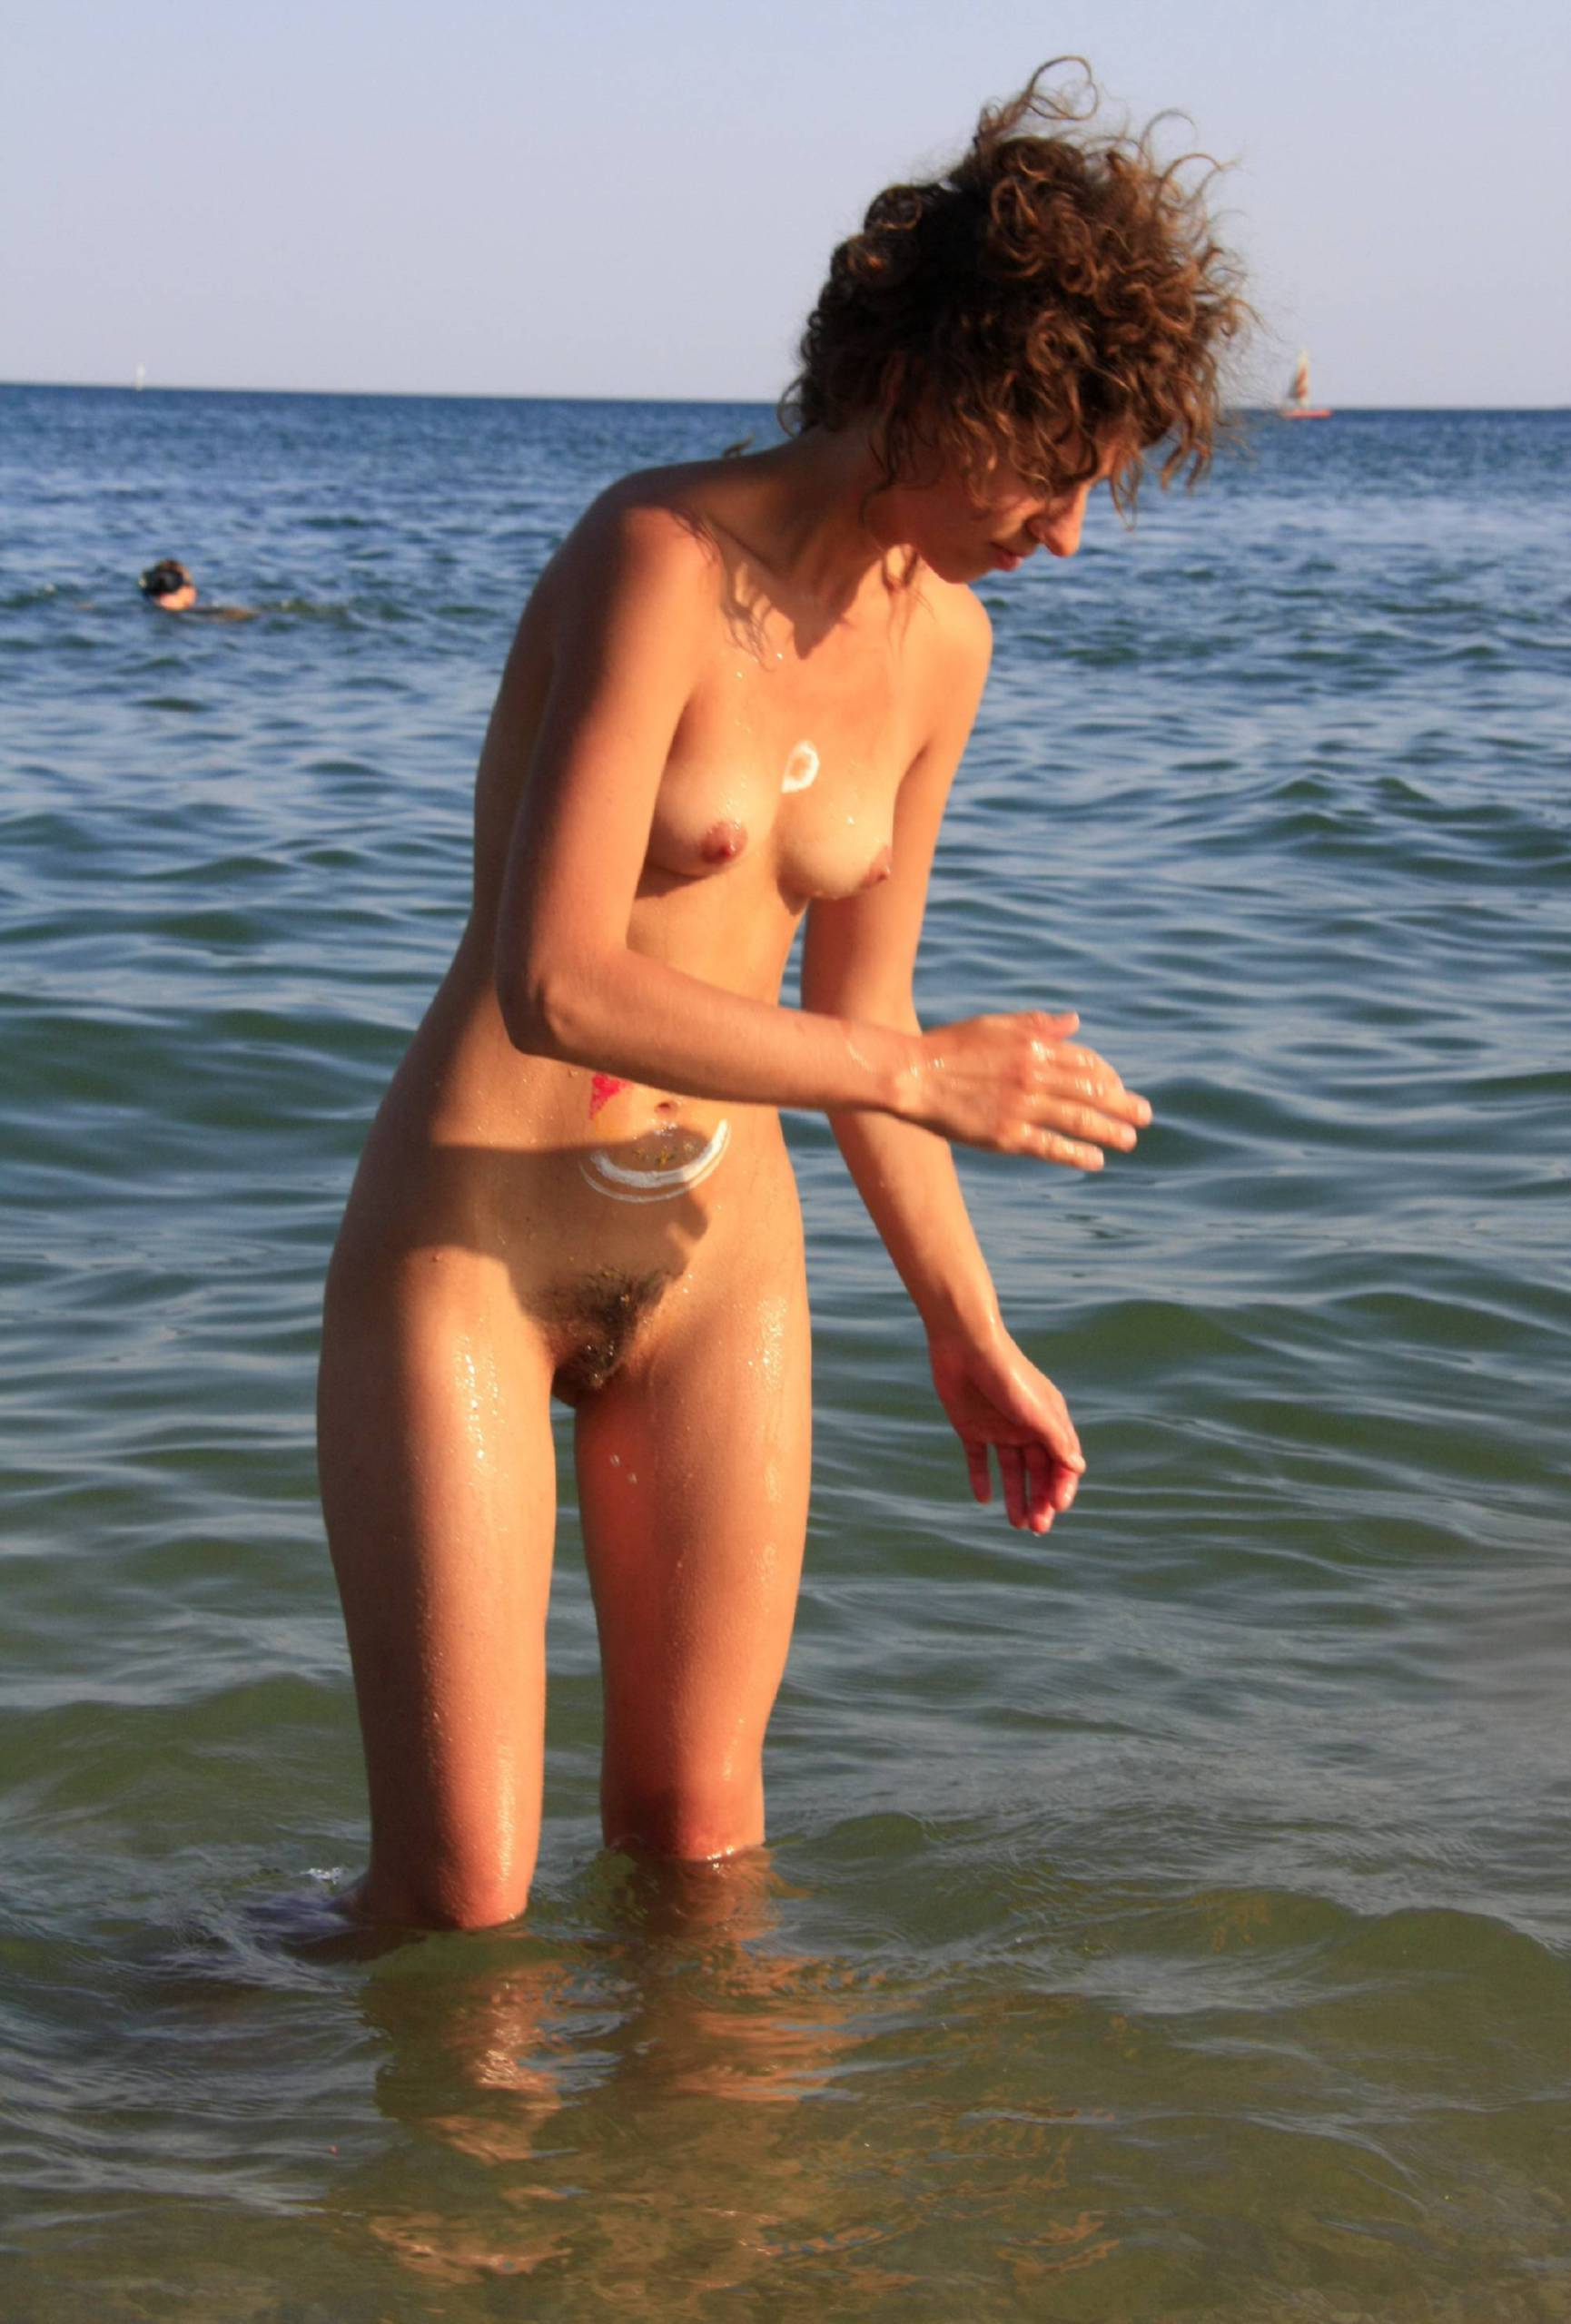 Nudist Gallery In Water Sole Nude Profile - 2